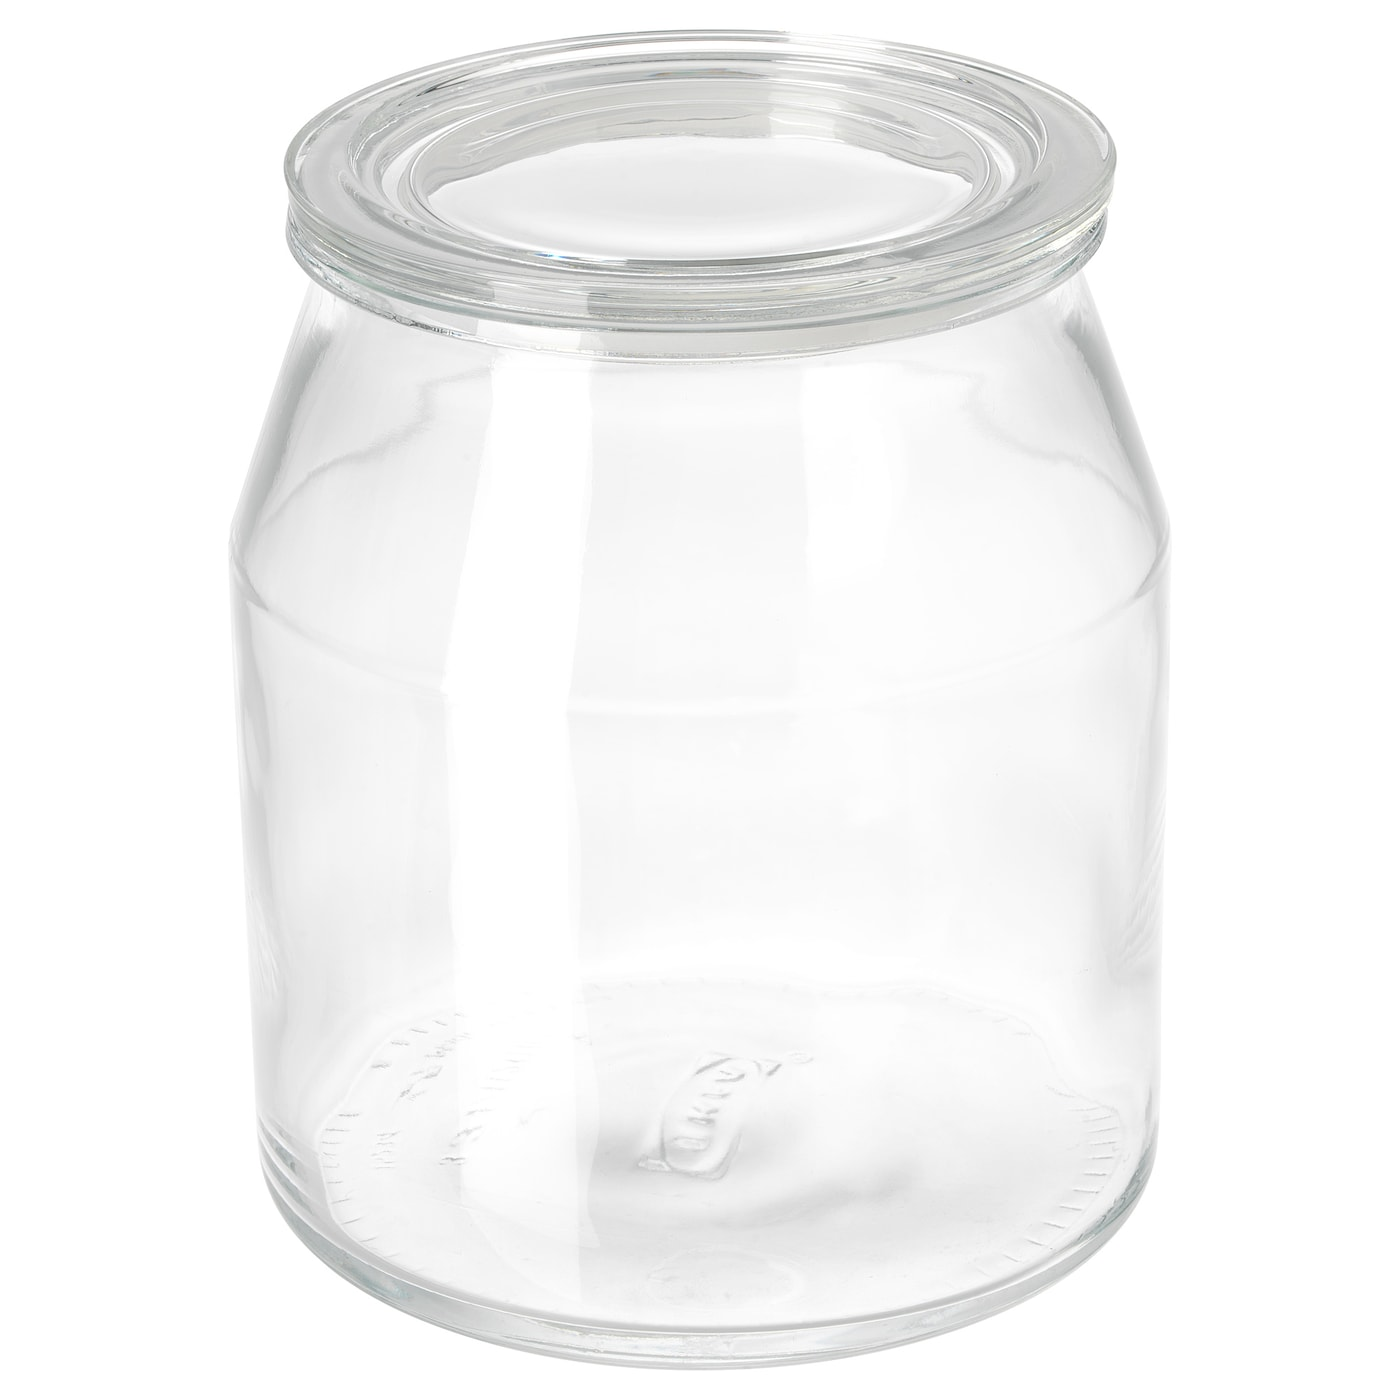 ikea 365 jar with lid glass 3 3 l ikea. Black Bedroom Furniture Sets. Home Design Ideas